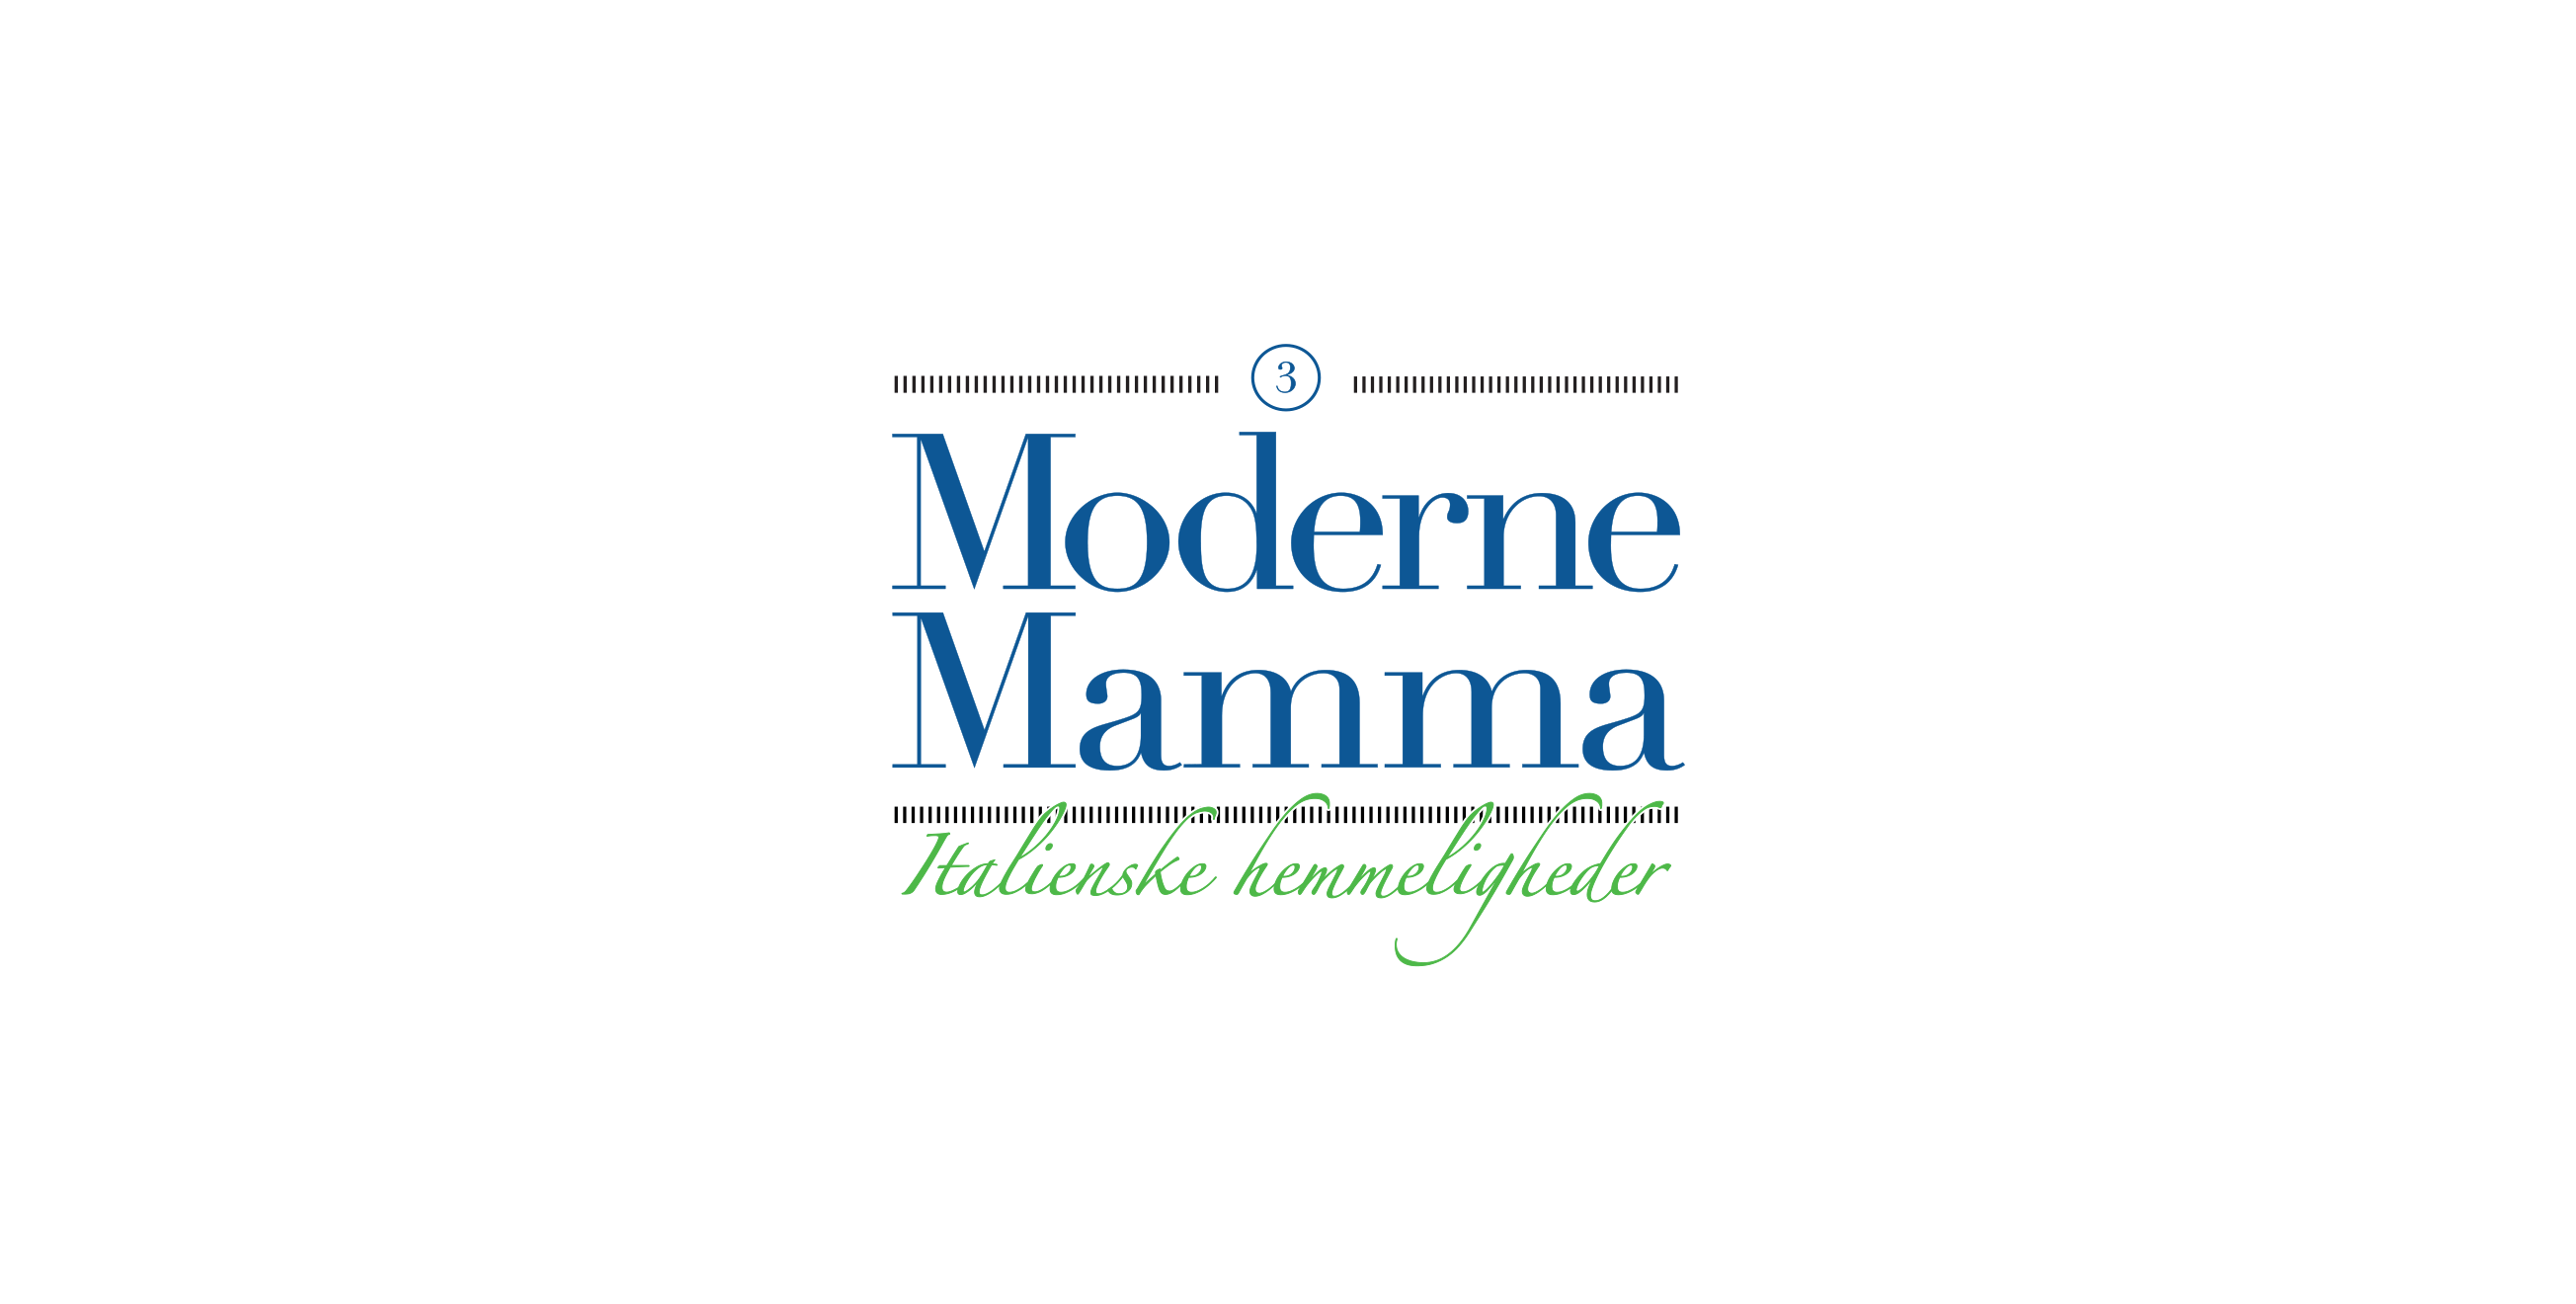 Moderne Mamma — Art direction and editorial book design.